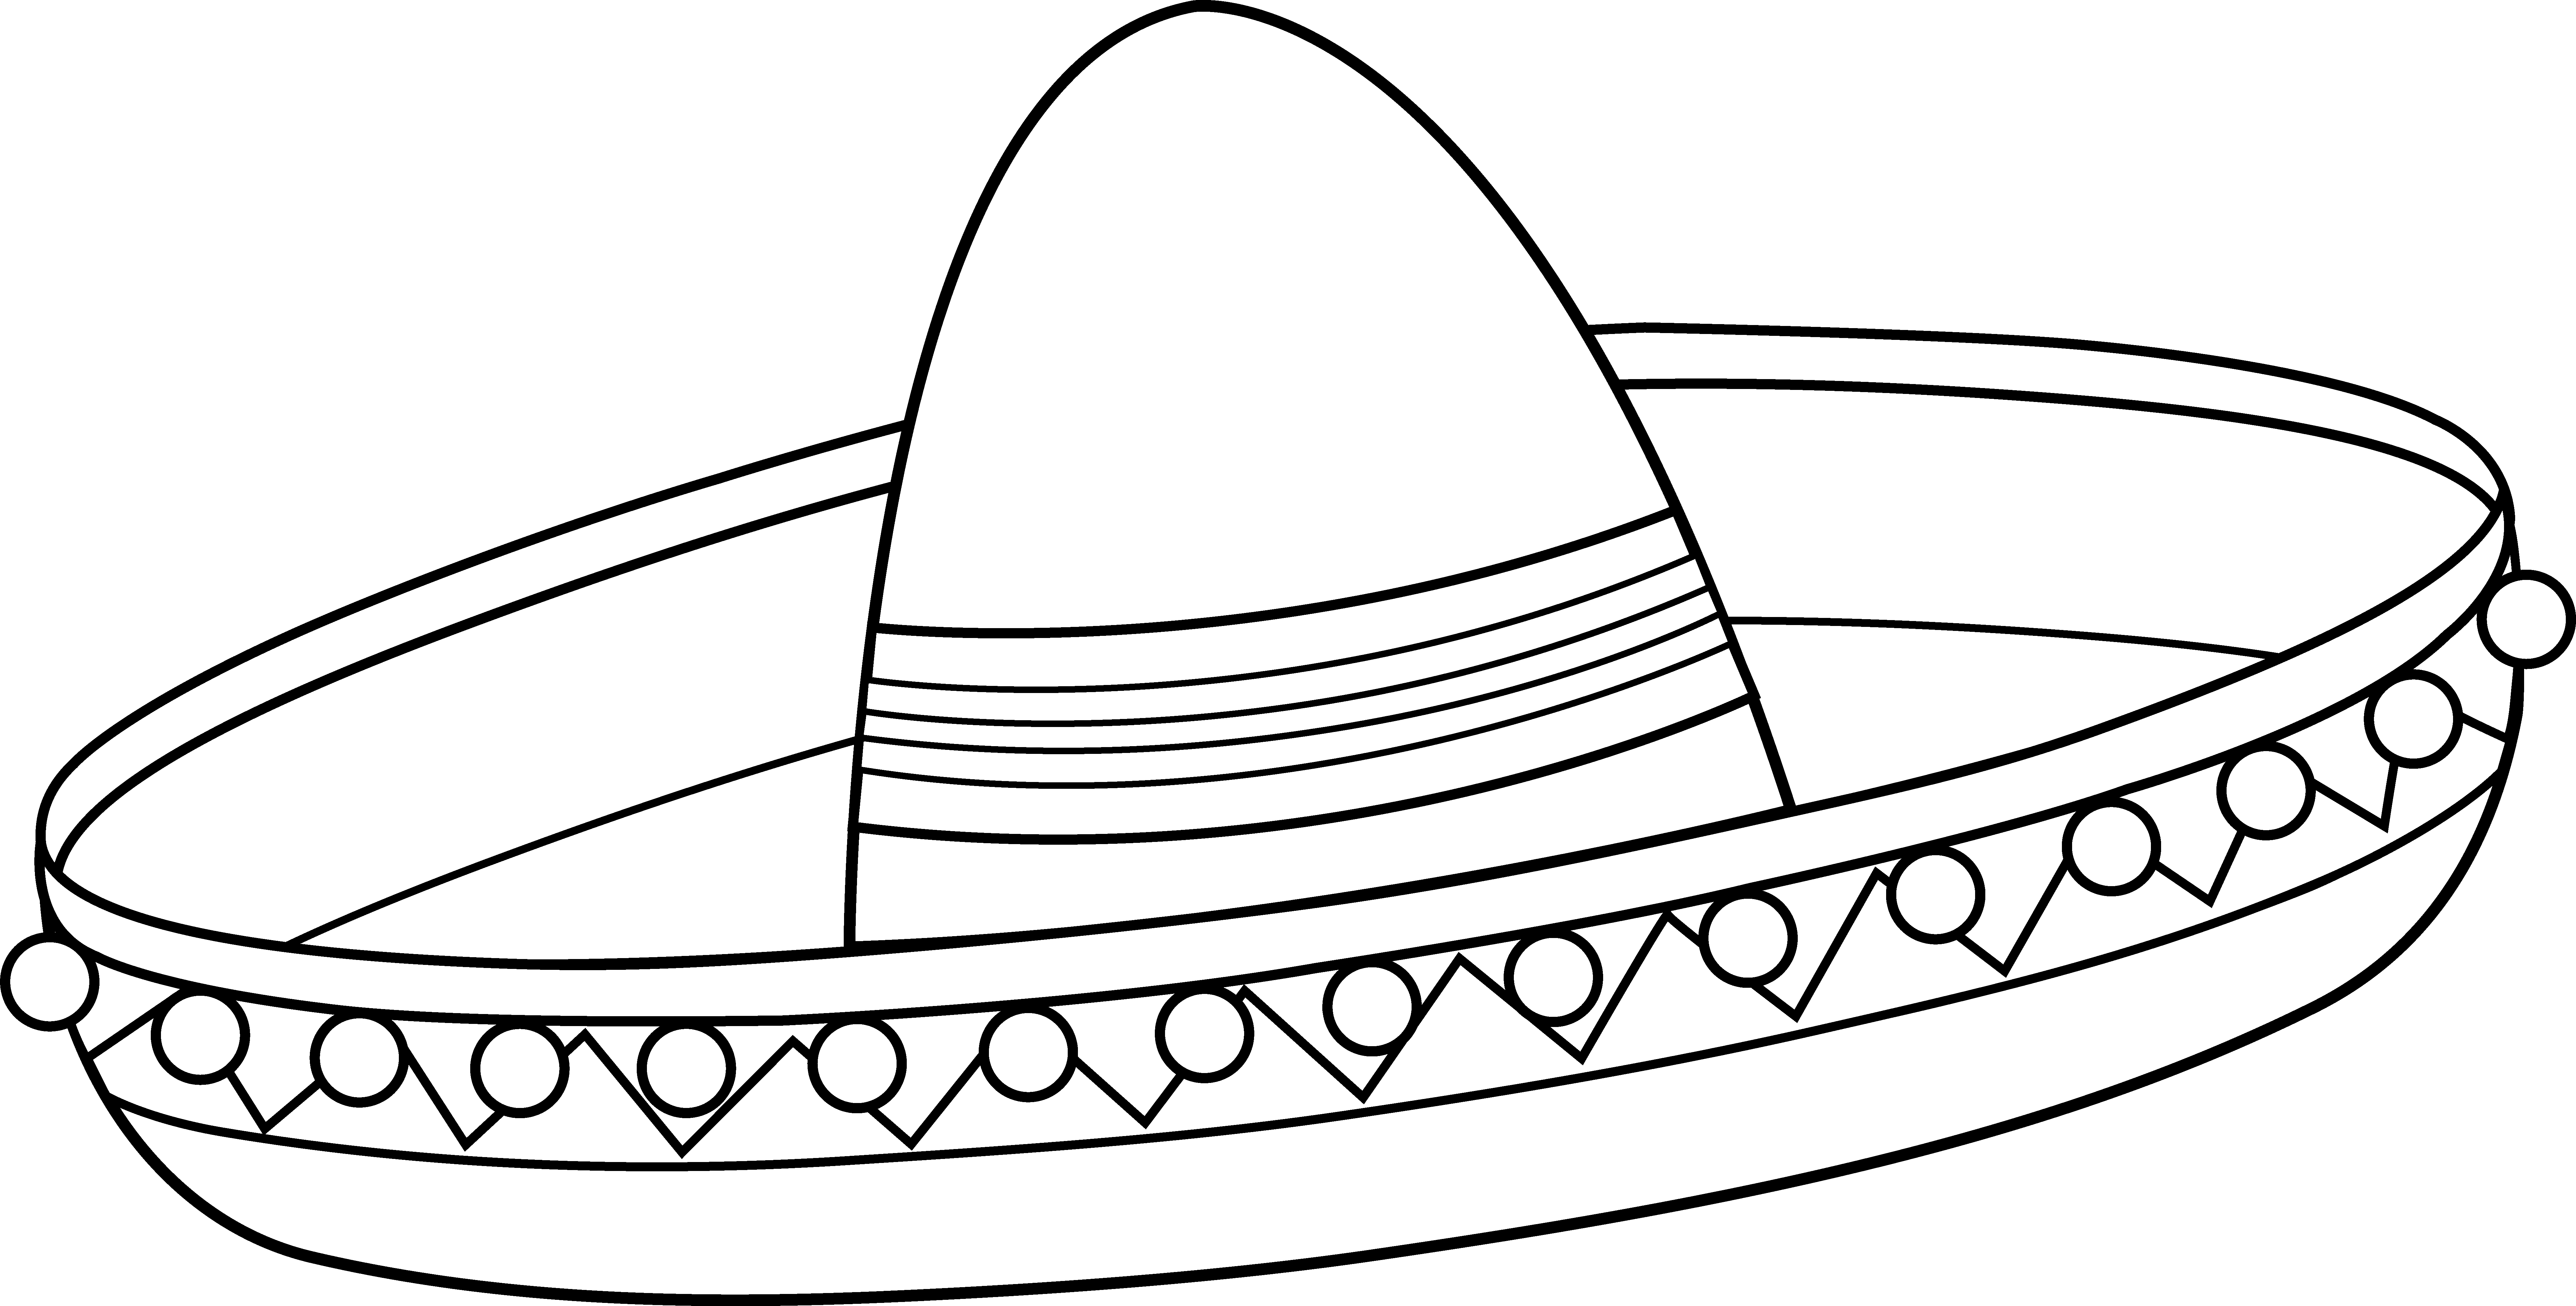 Moustache clipart poncho mexican. Sombrero coloring page first